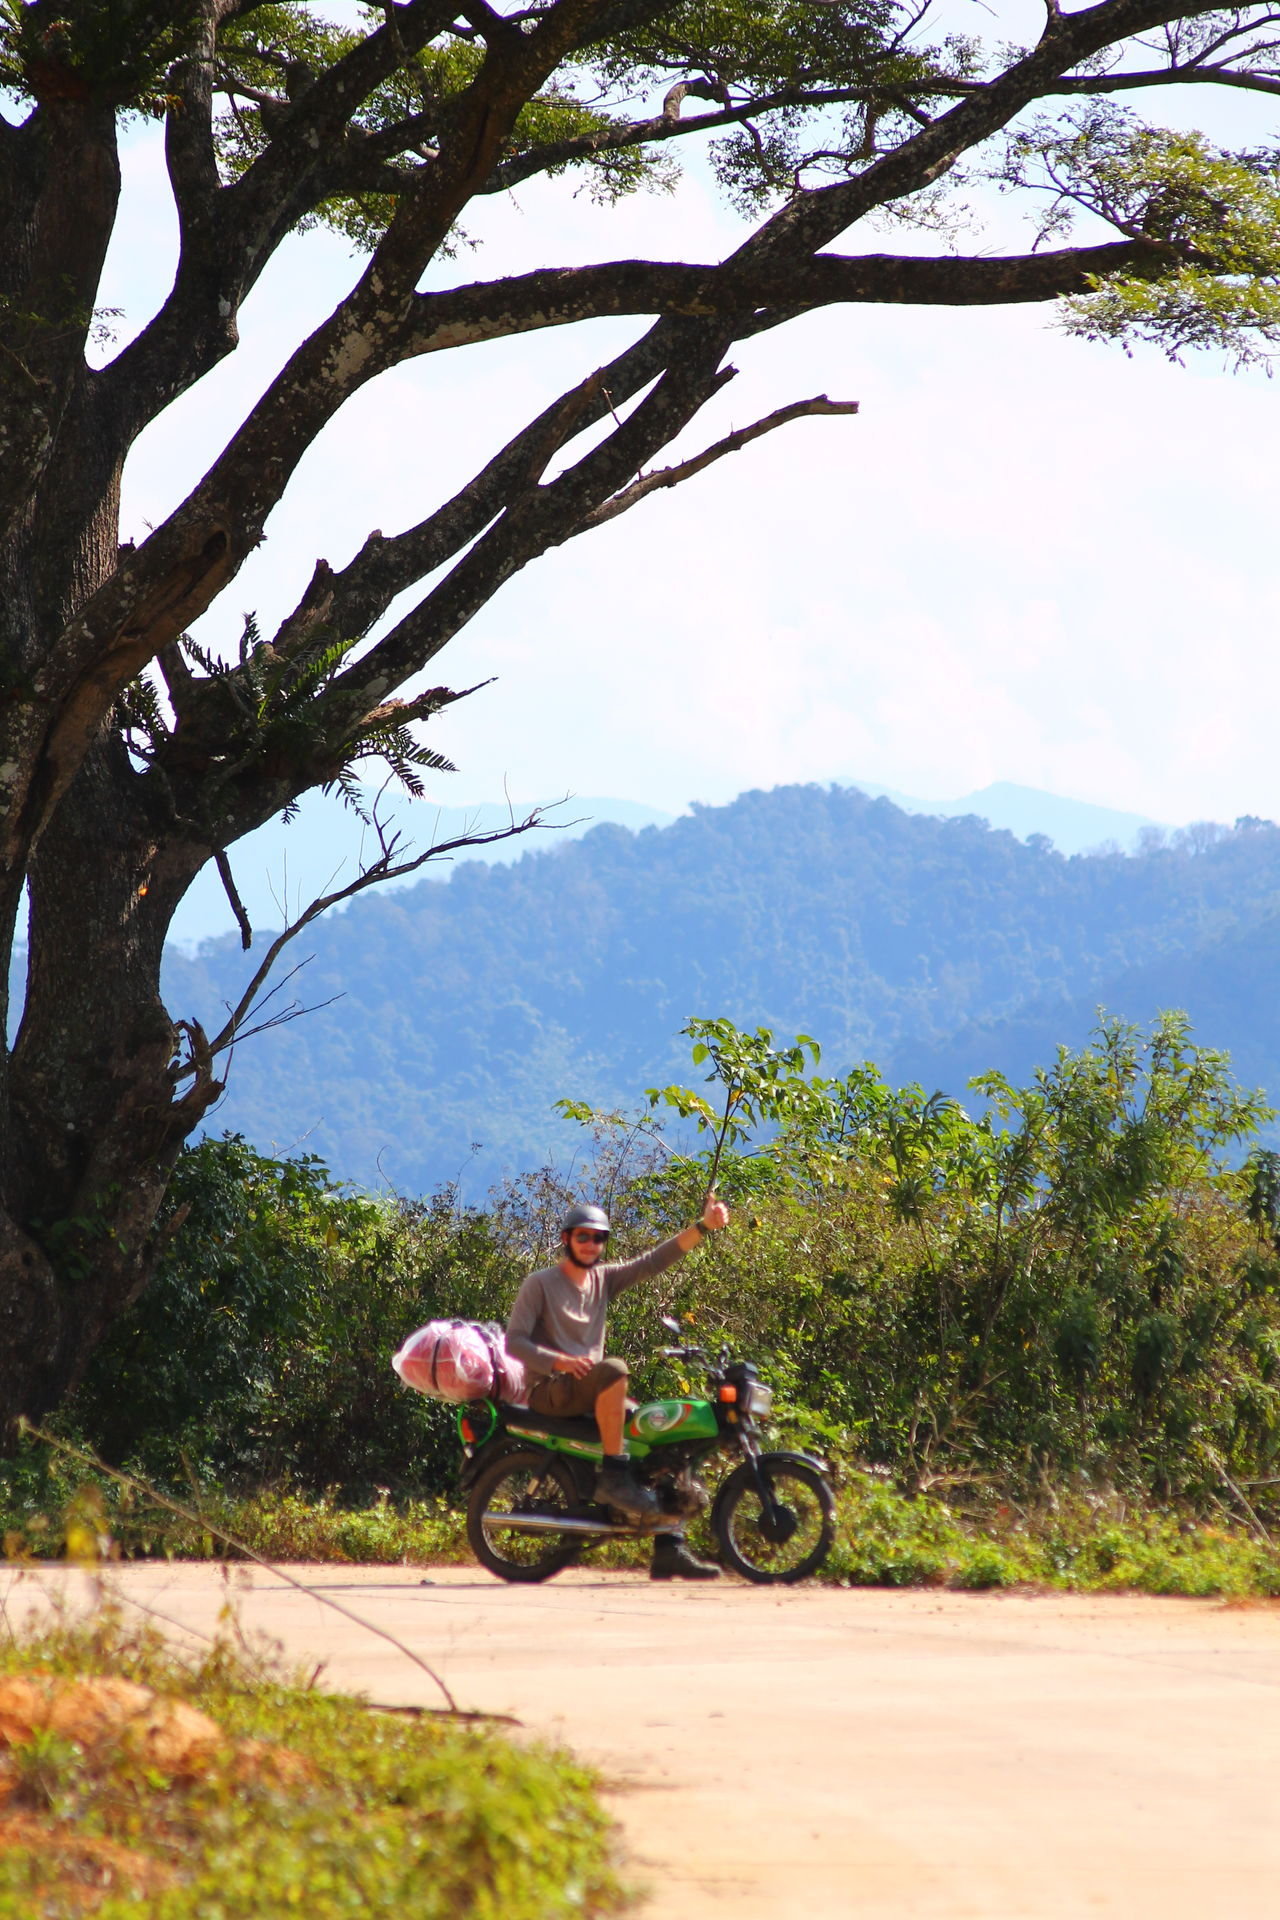 Tree Sitting One Person Full Length Bicycle Vacations Nature Adventure Adult Outdoors Motorbike Motorbike Touring Purist In Photography Purist No Edit No Filter Travel Nature People Photography Travel Photography The Way Forward Vietnam Heineken Logo Human Interaction State Of Mind  Solitude Emotions